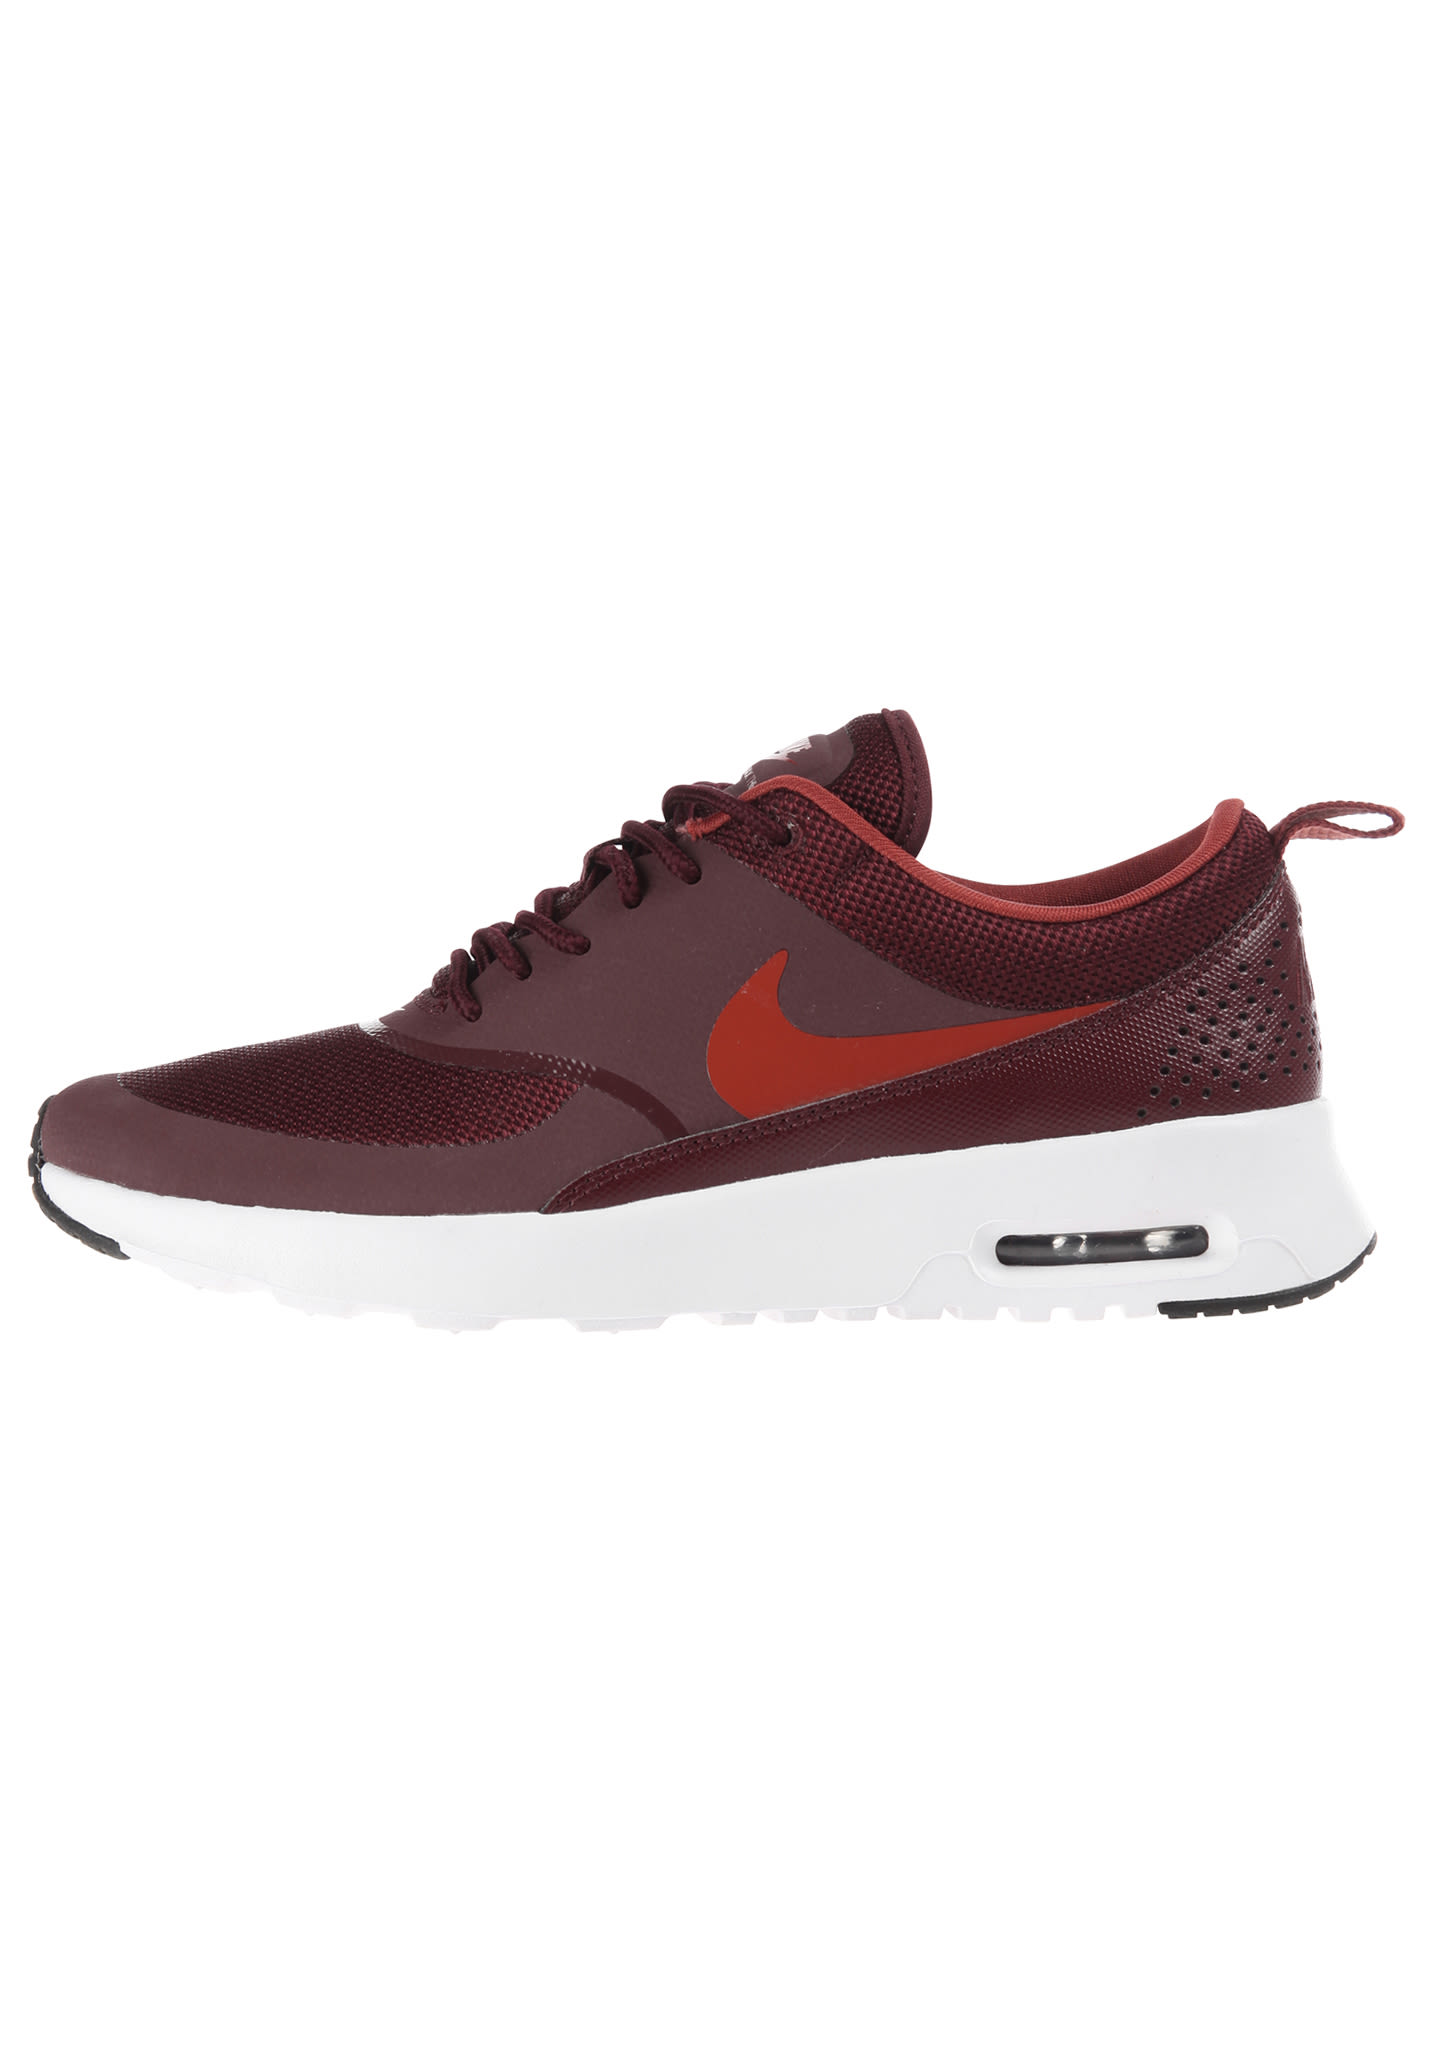 on sale edf99 9c627 NIKE SPORTSWEAR Air Max Thea - Sneakers for Women - Red - Planet Sports